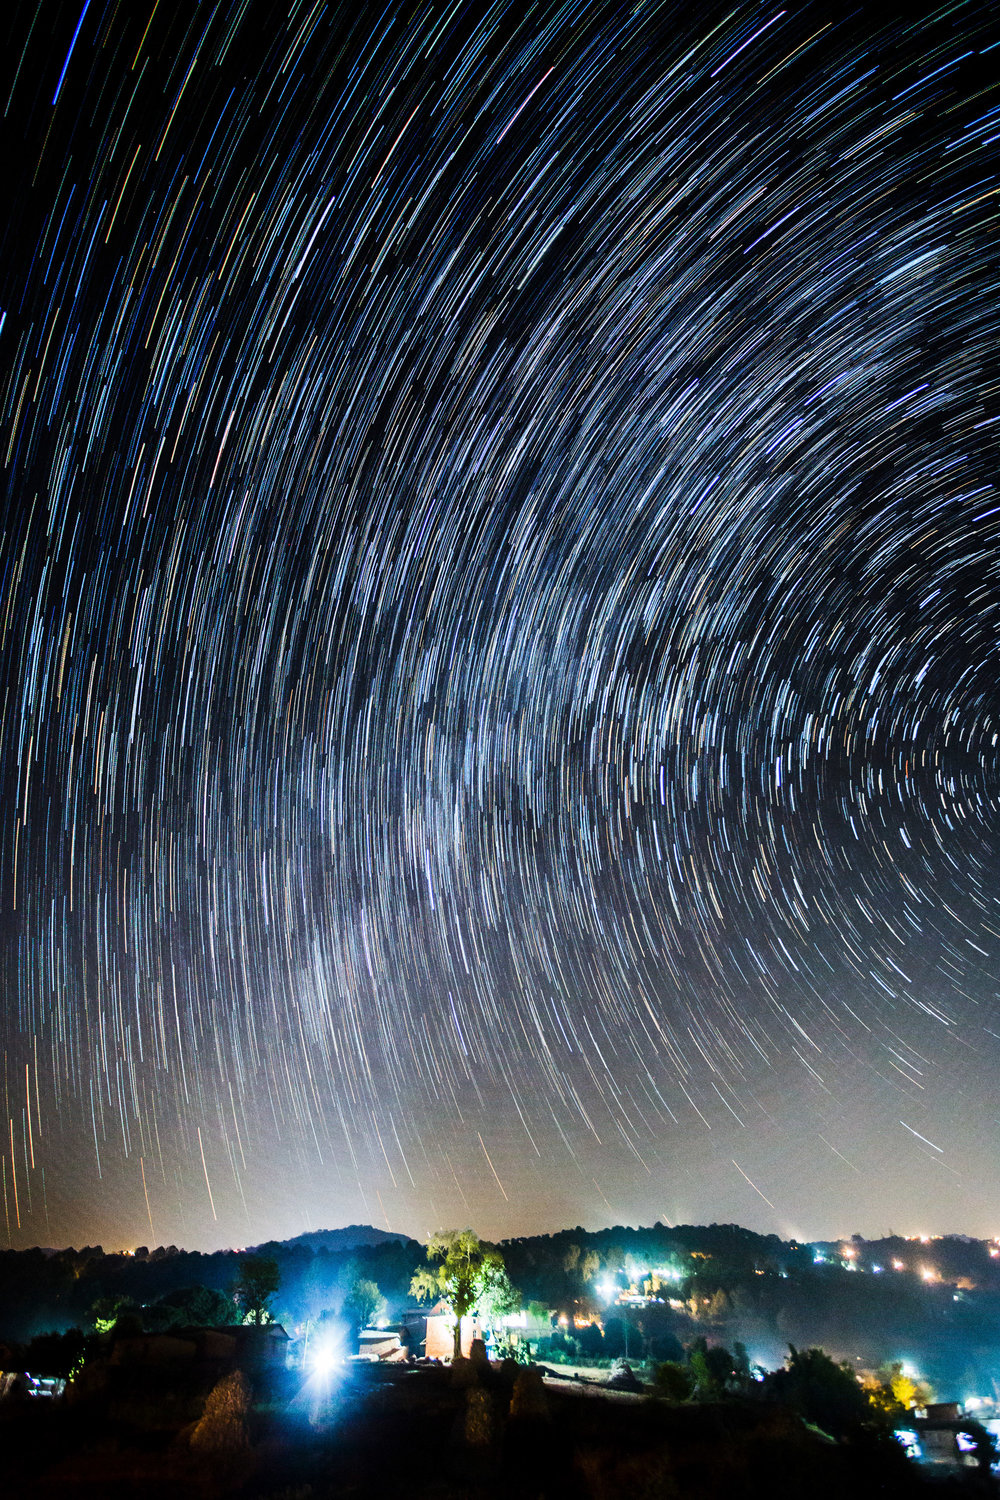 I guess it isn't the best idea to include Milky Way into star trails